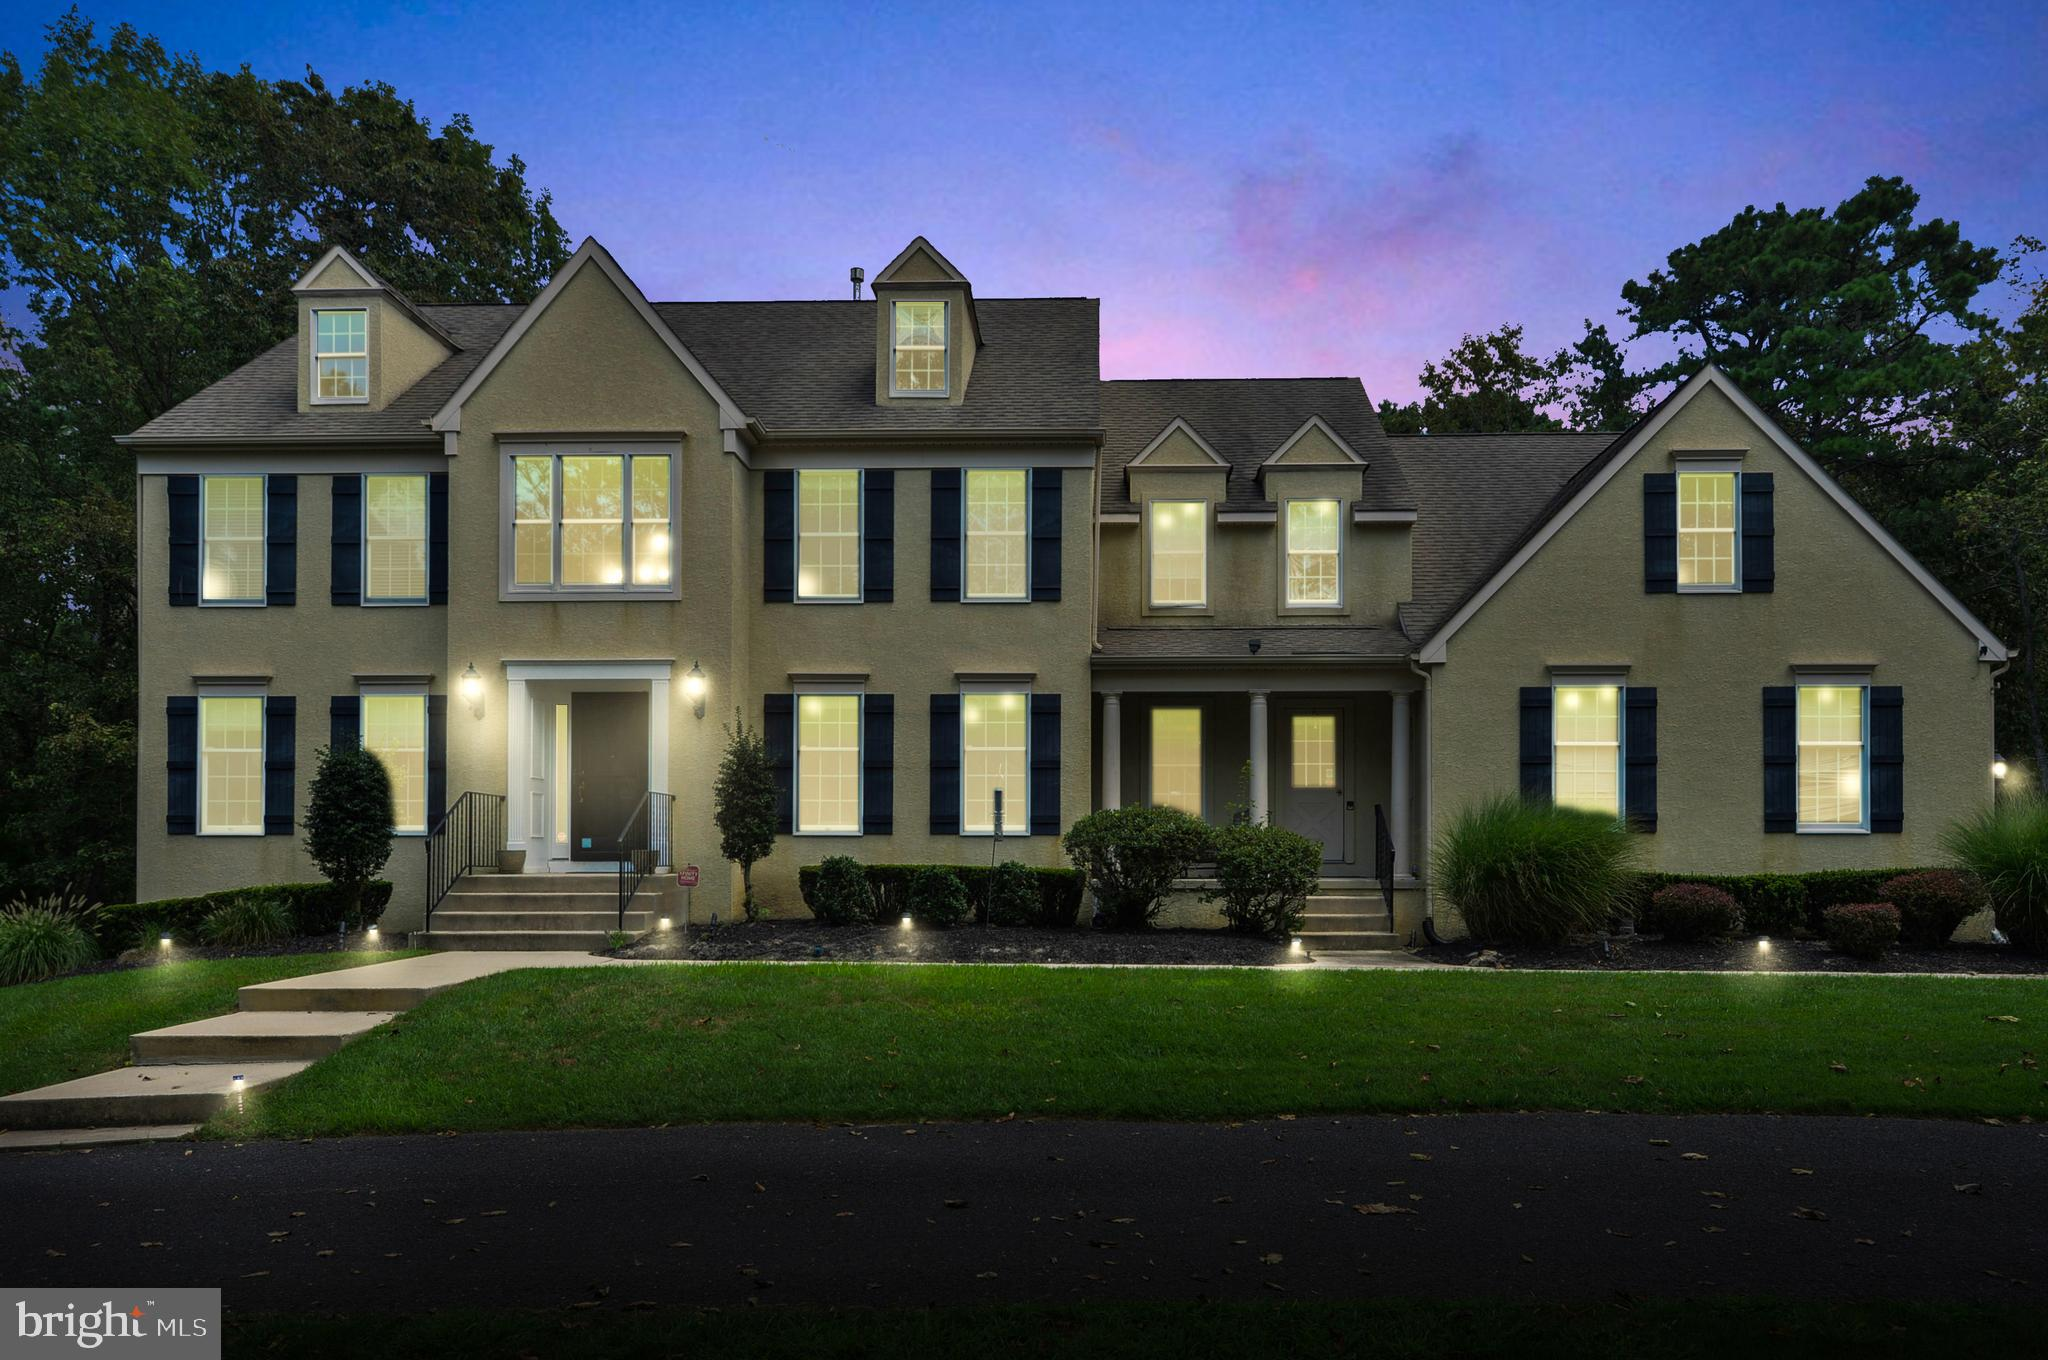 66 BORTONS ROAD, MARLTON, NJ 08053